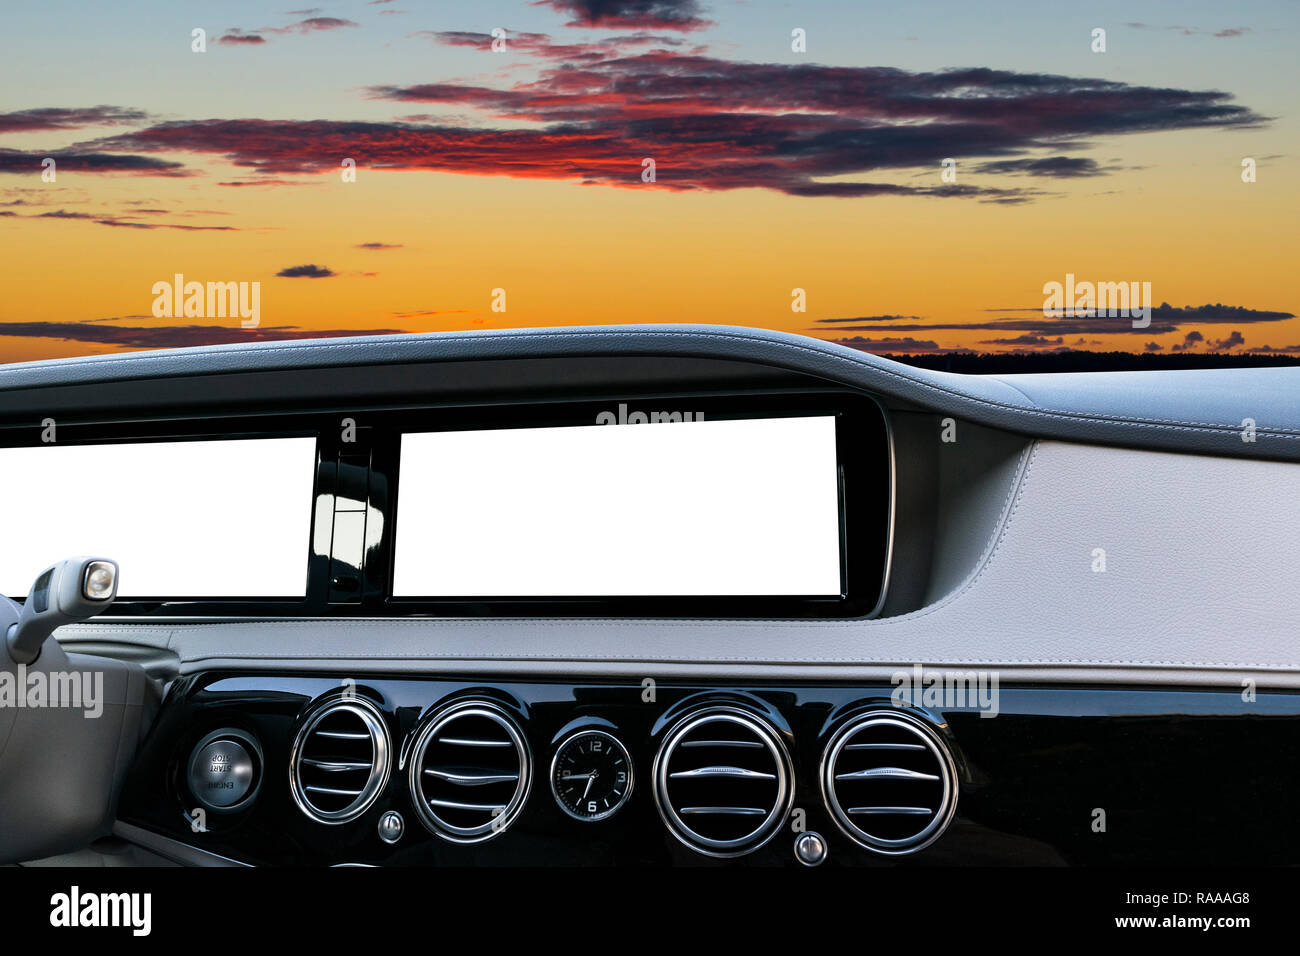 White Screen system display for GPS Navigation and Multimedia technology in car. White copy space of touch screen. Car dashboard empty space for text. - Stock Image